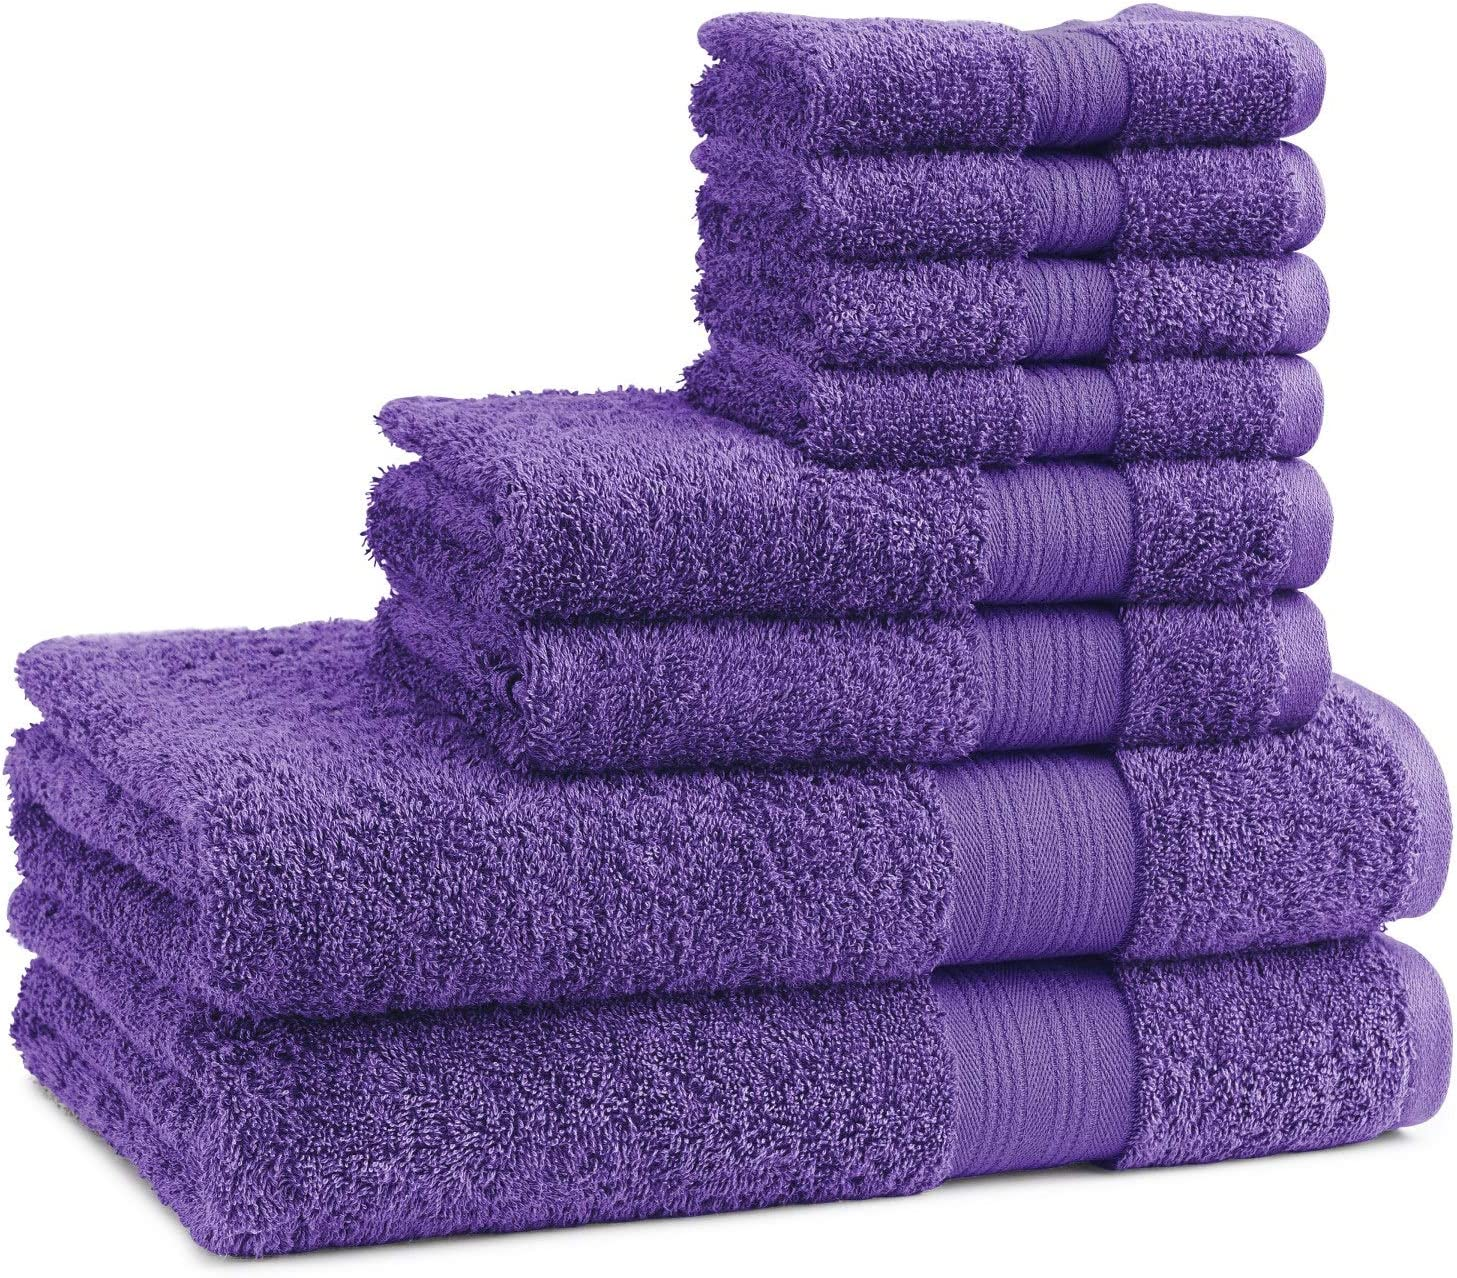 EuroSpa Luxury 8 Piece Bath Towel Set | 100% Cotton Quick Dry | Highly Absorbent Bathroom Towels | Ultra Soft | Large - 500 GSM (4 Wash Cloth, 2 Hand Towel, 2 Bath Towel) | Lilac Color